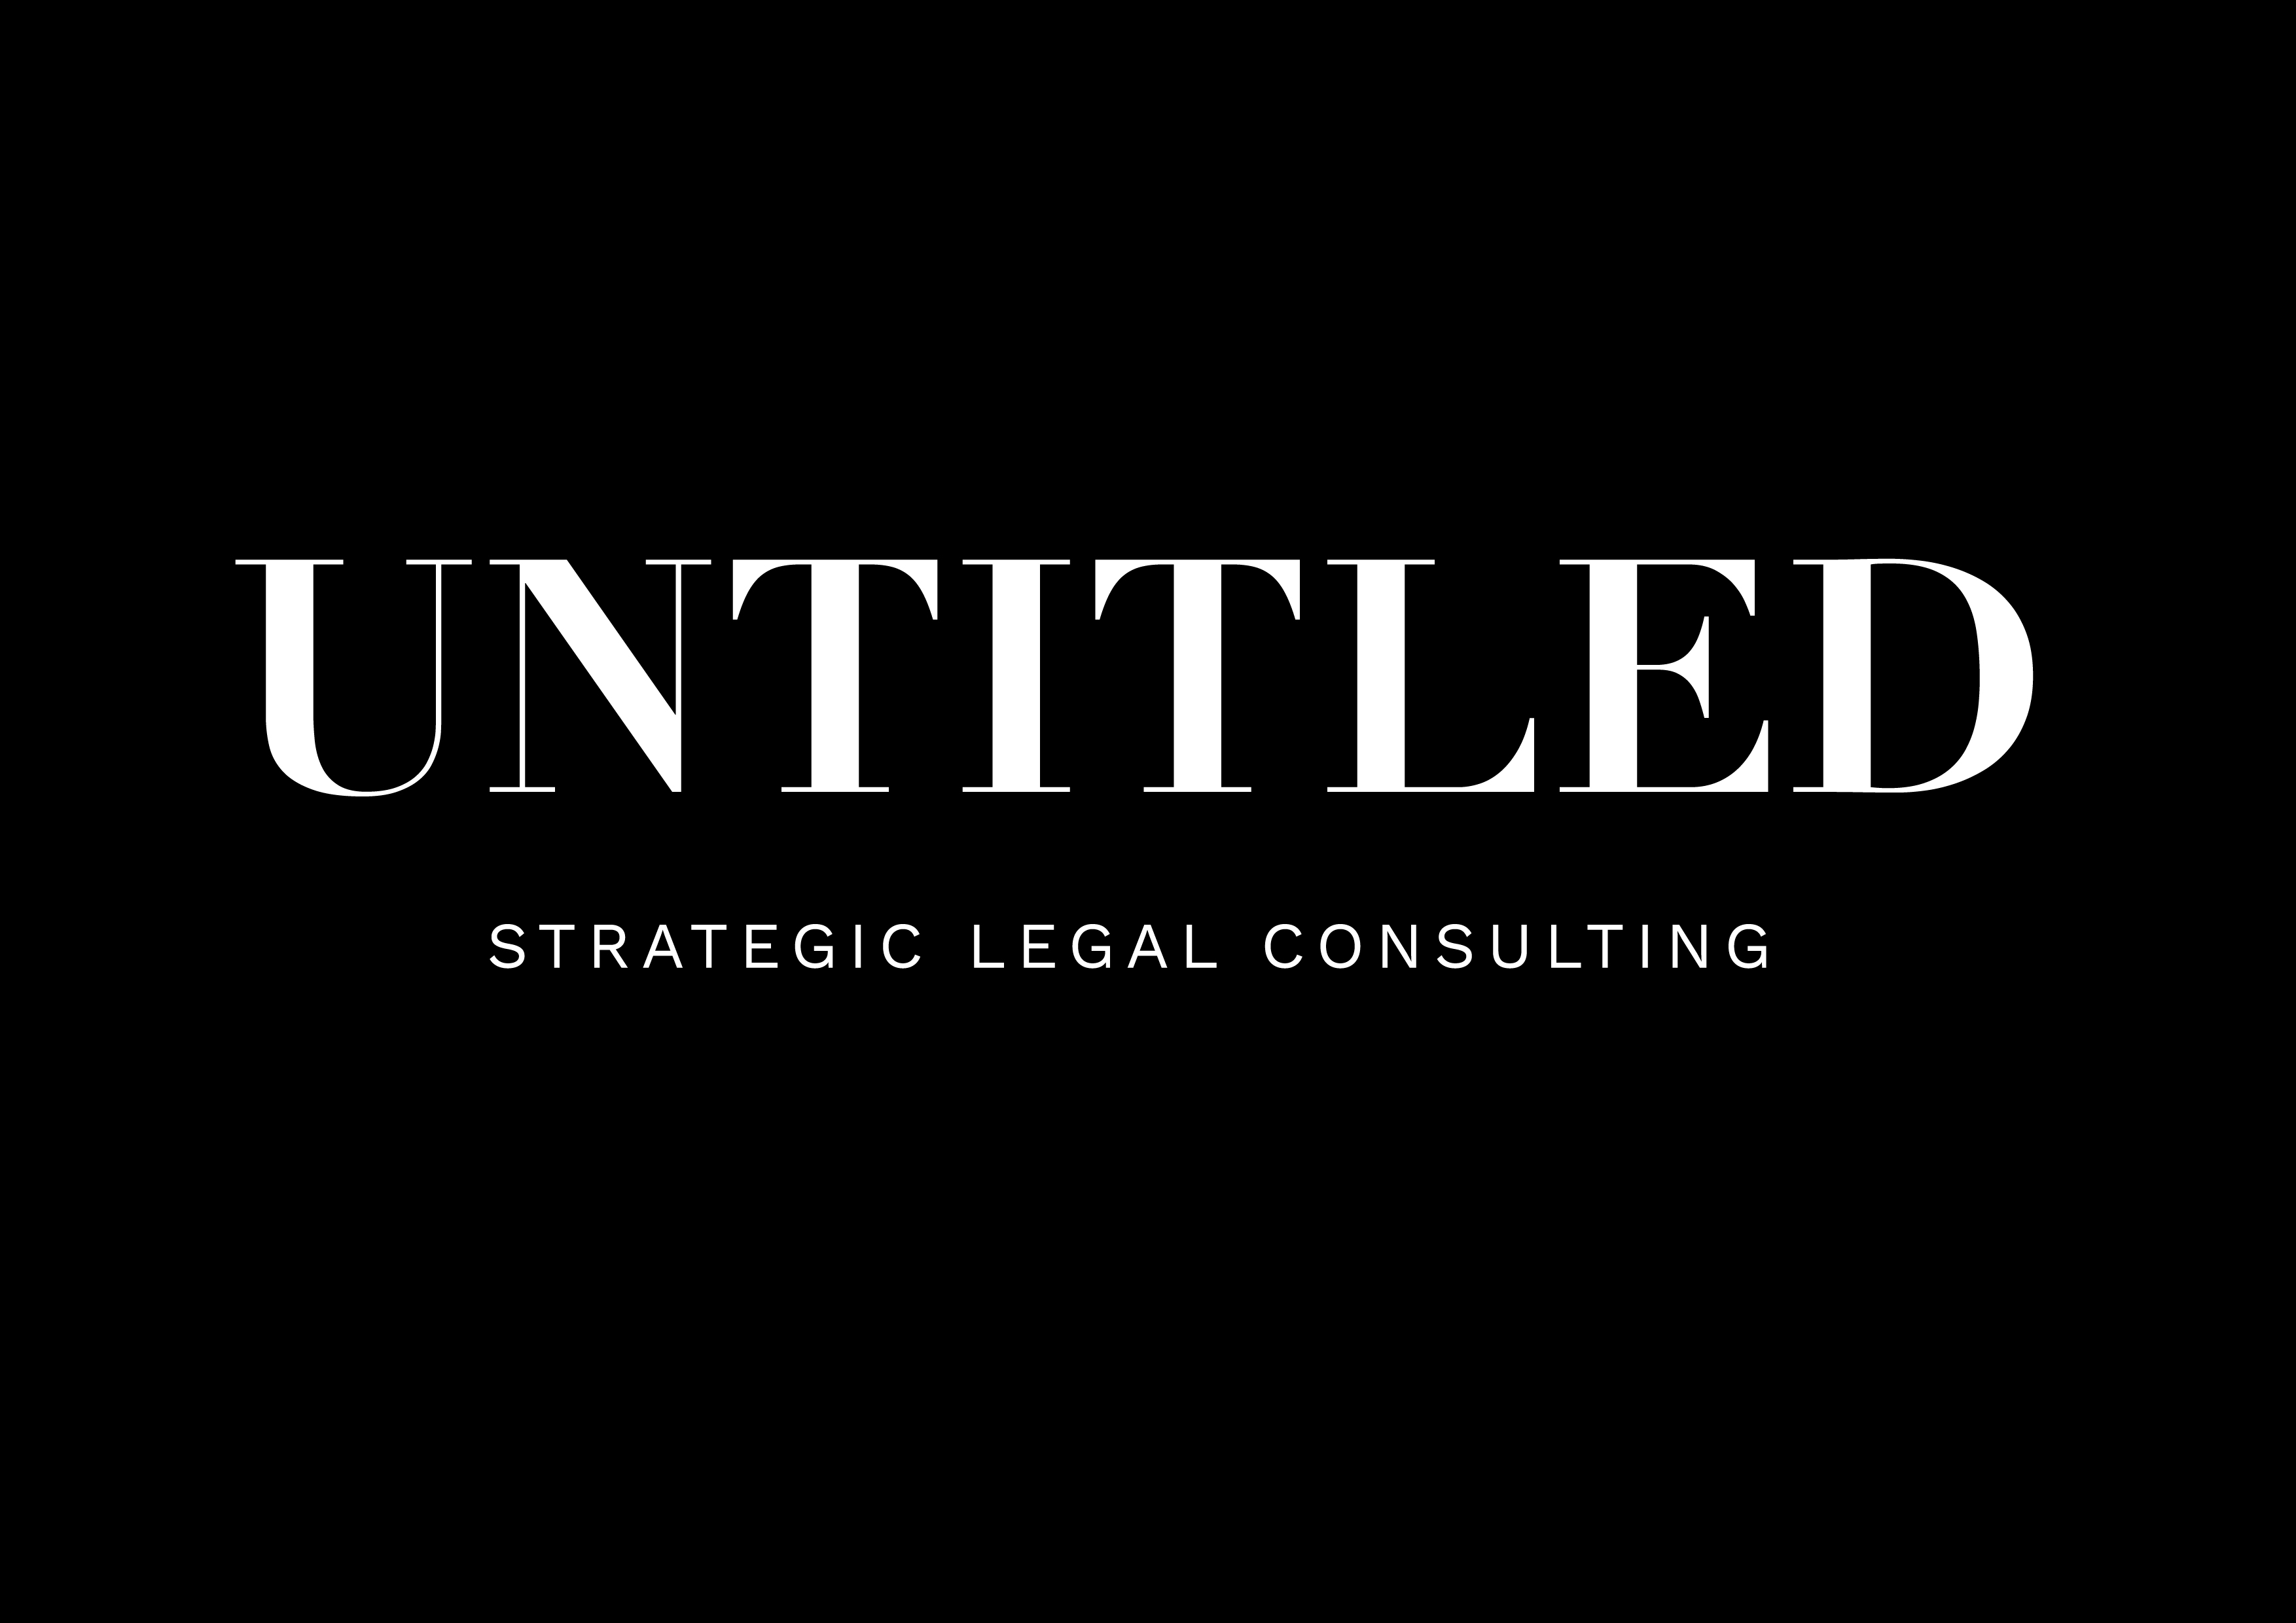 Litwak & Partners Makes Change to 'Untitled'